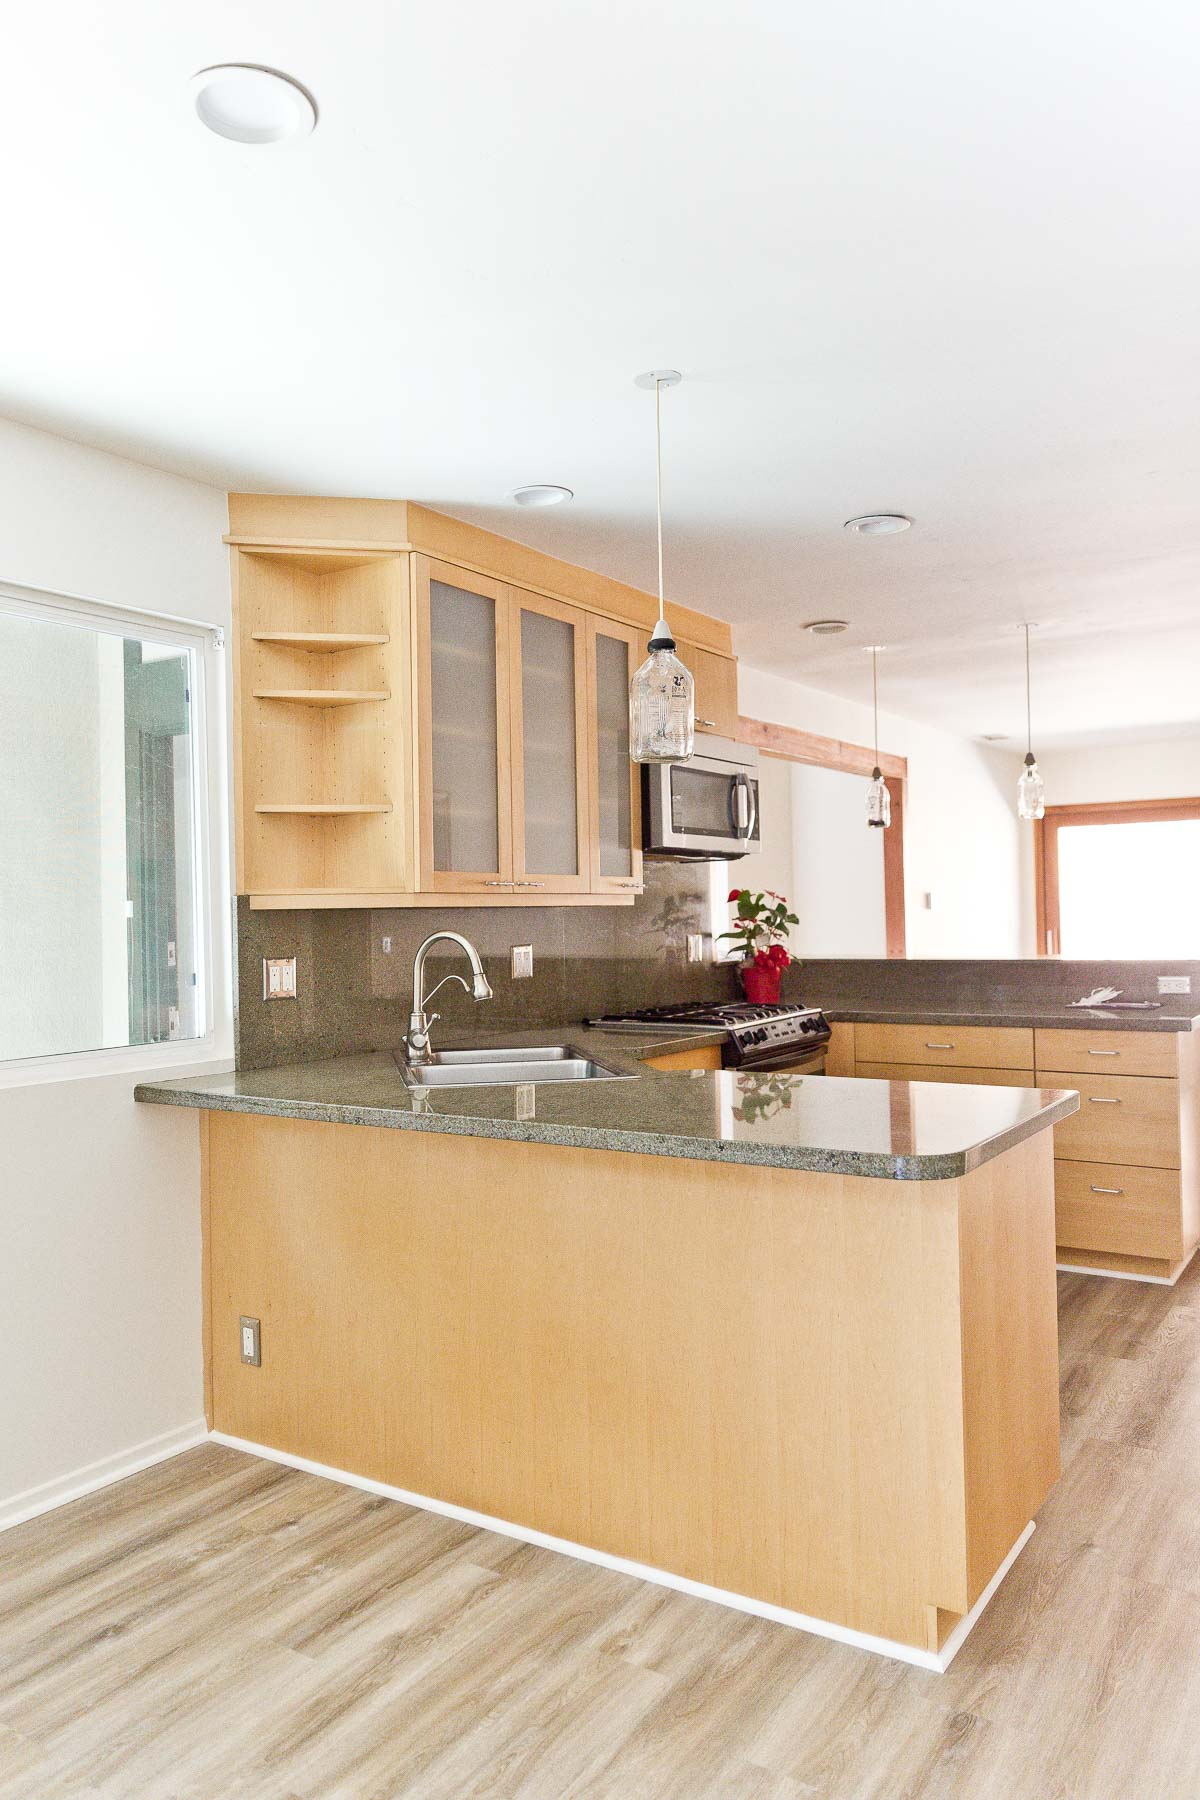 Image of empty kitchen with minimal wood cabinets and green natural stone counters.